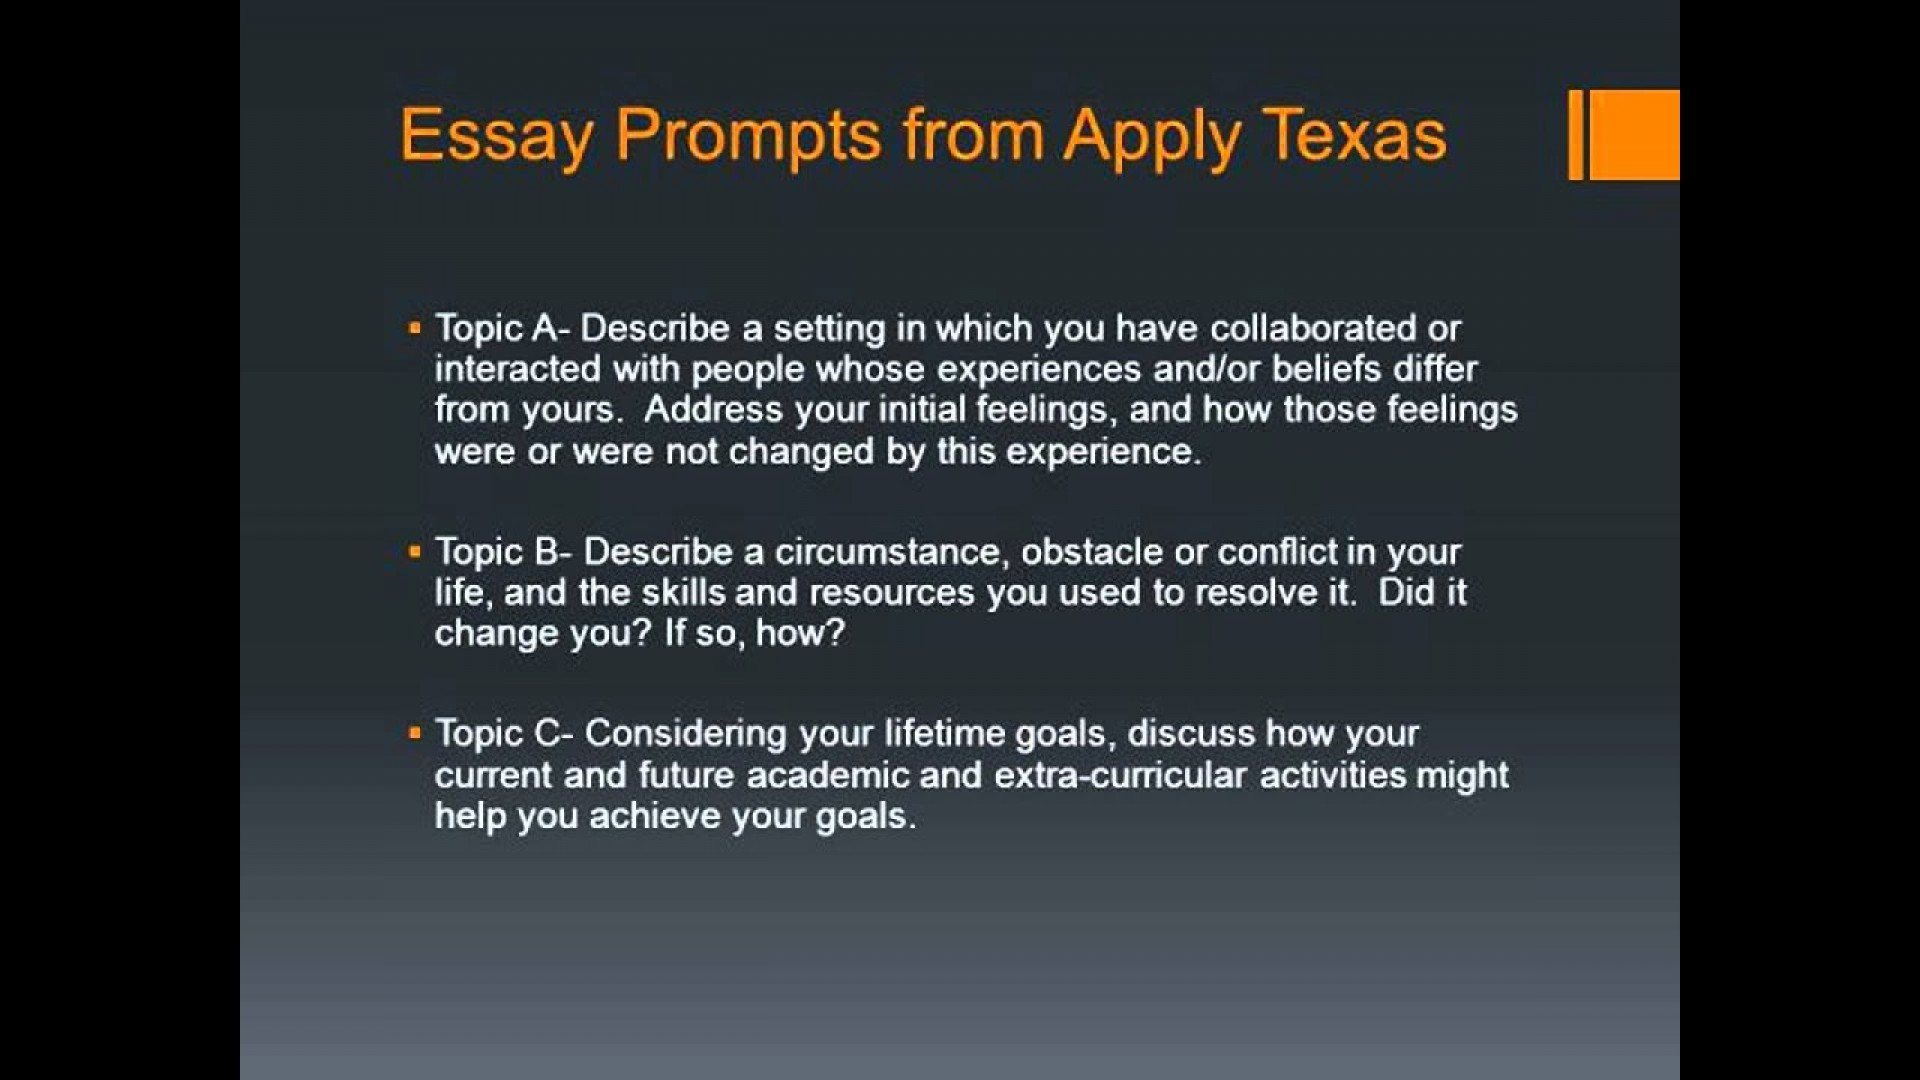 023 Maxresdefault Apply Texas Essays Striking Essay C Examples 2016 Prompt Example 1920